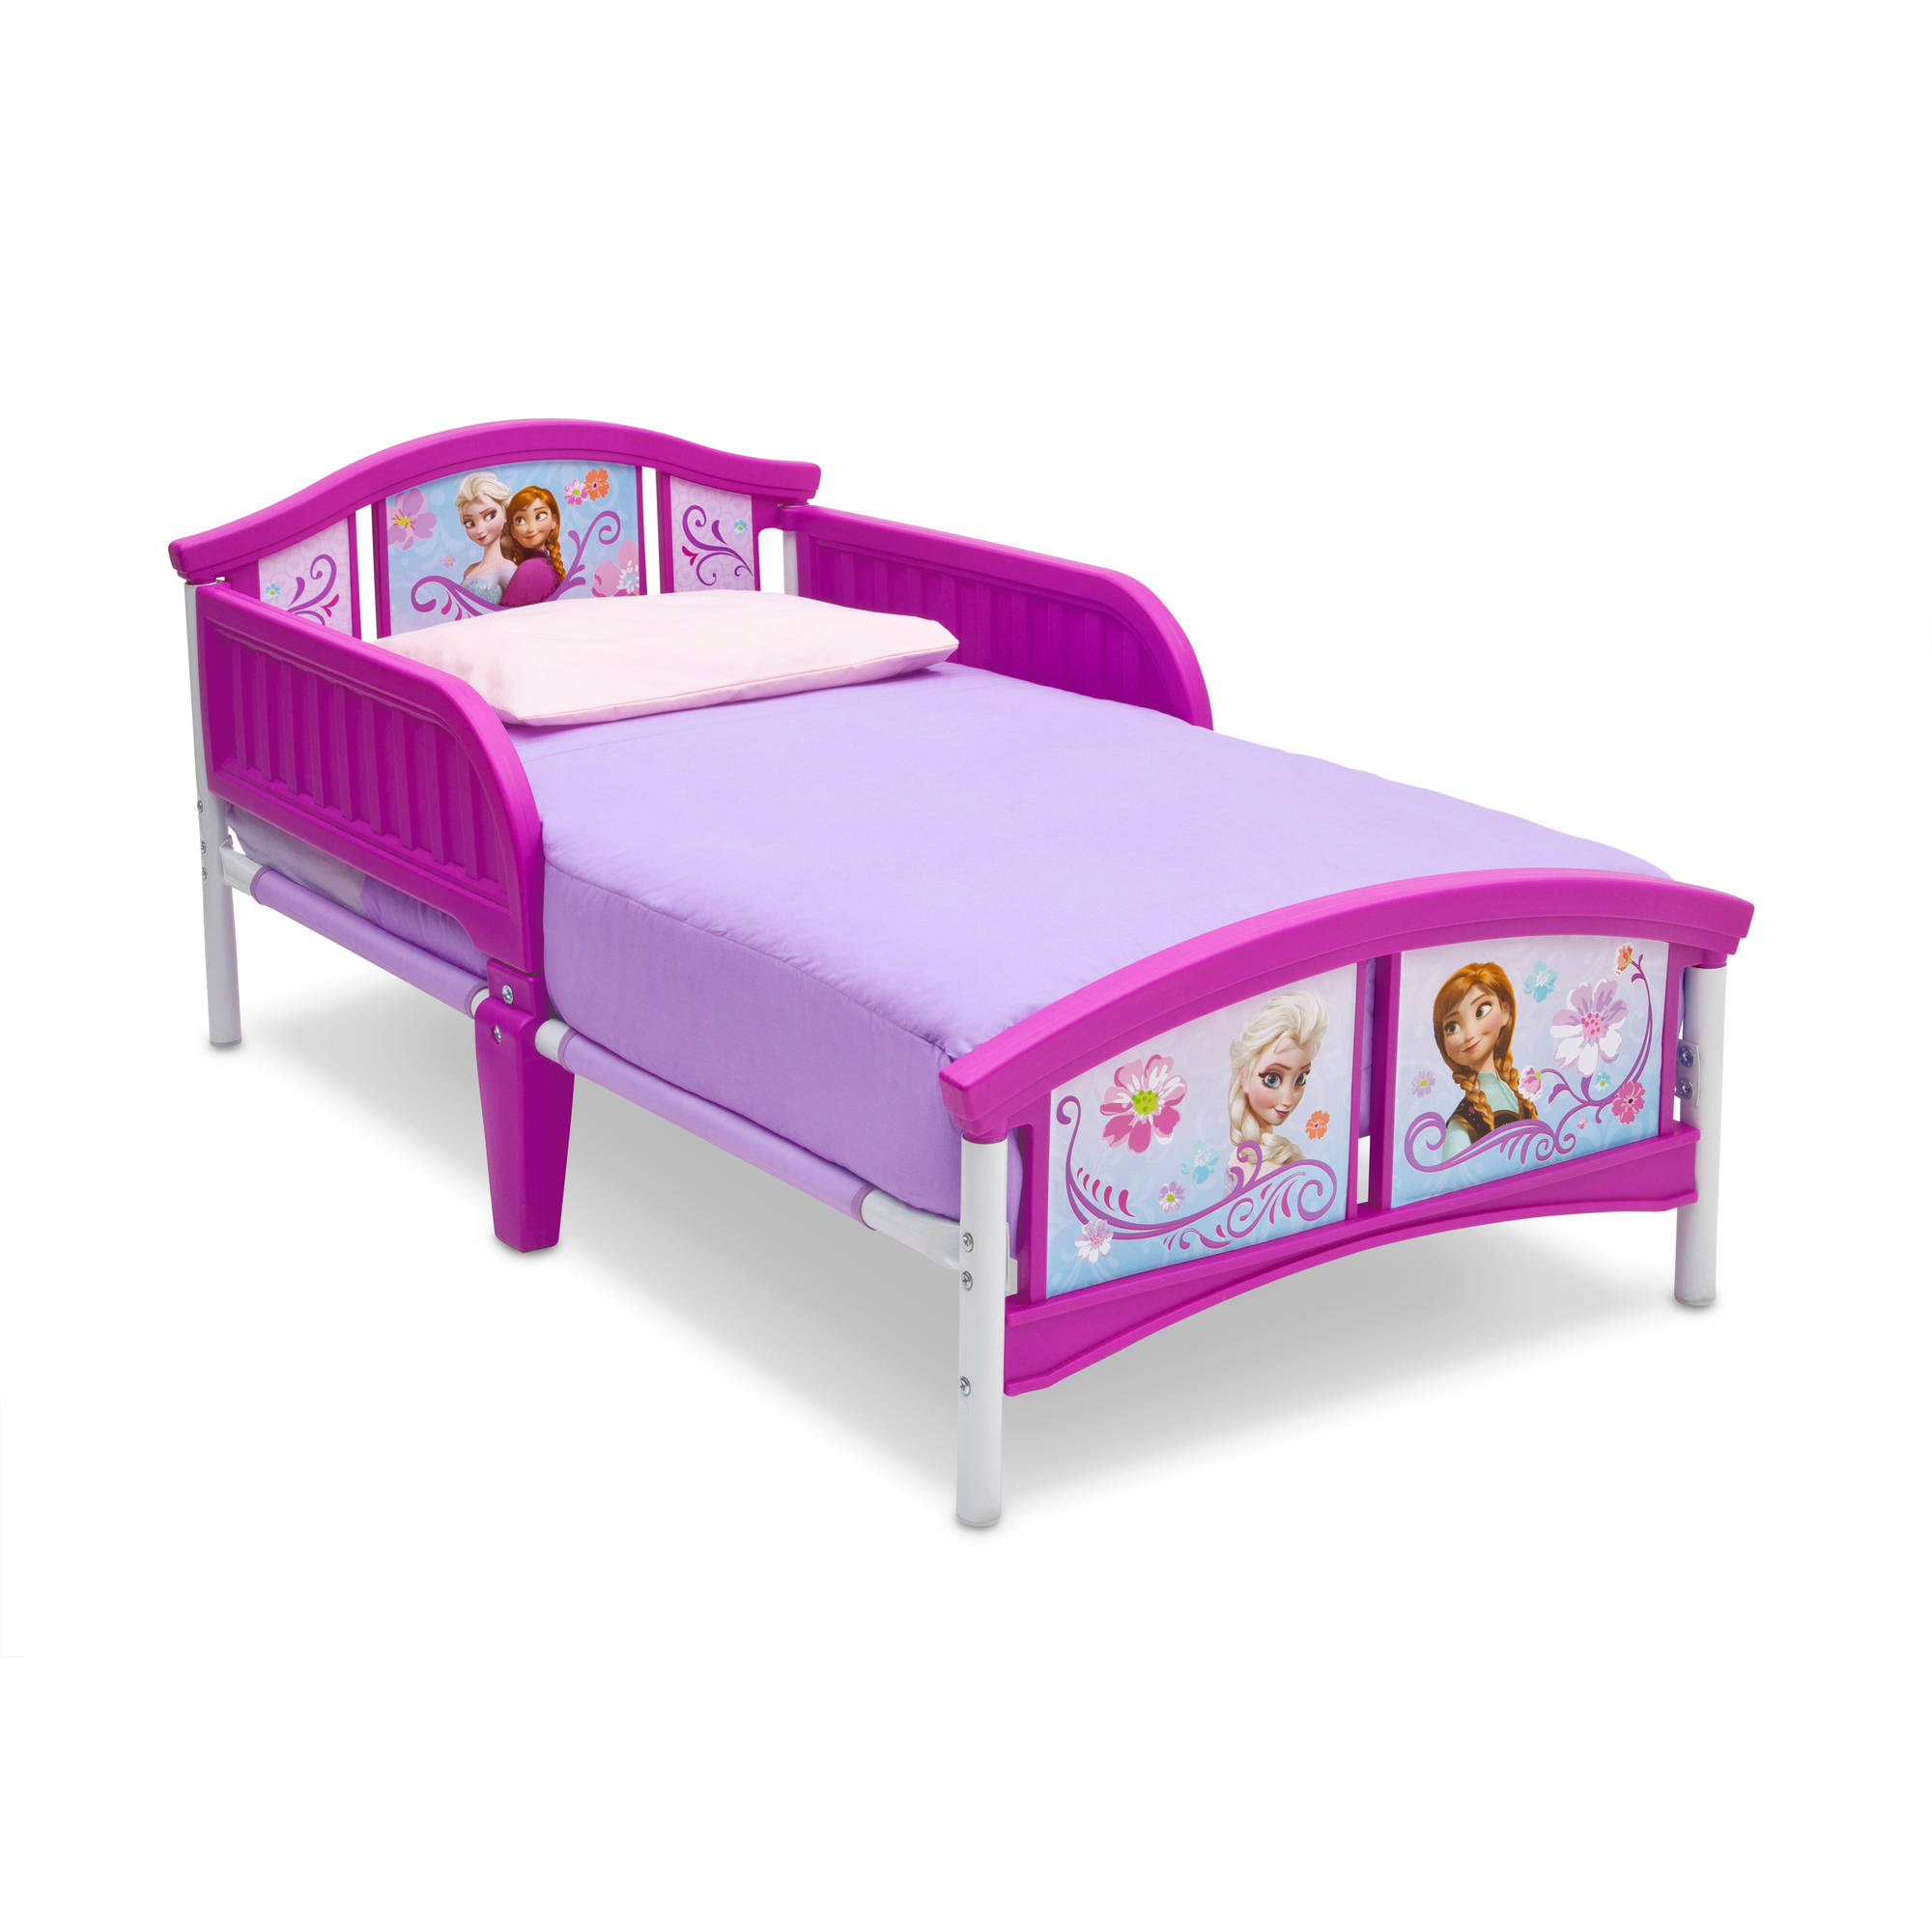 Girl toddler bed furniture - Disney Minnie Mouse Bow Tique Canopy Toddler Bed Lavender Walmart Com